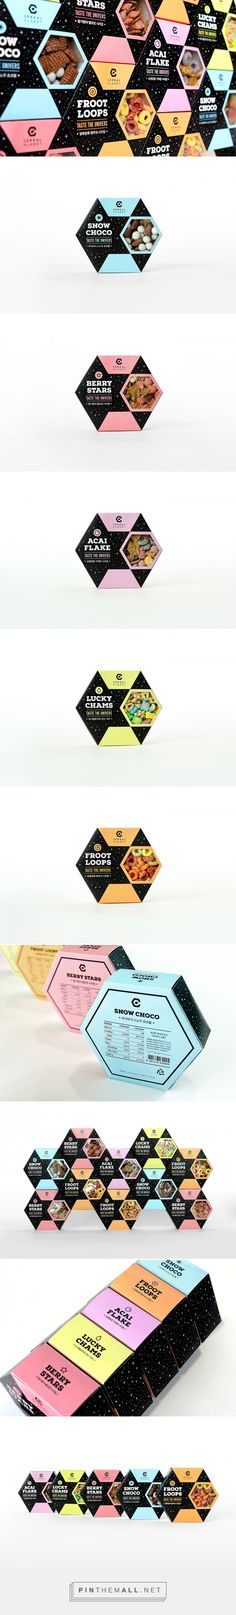 Cereal Planet - Package Design on Behance - created via https://pinthemall.net